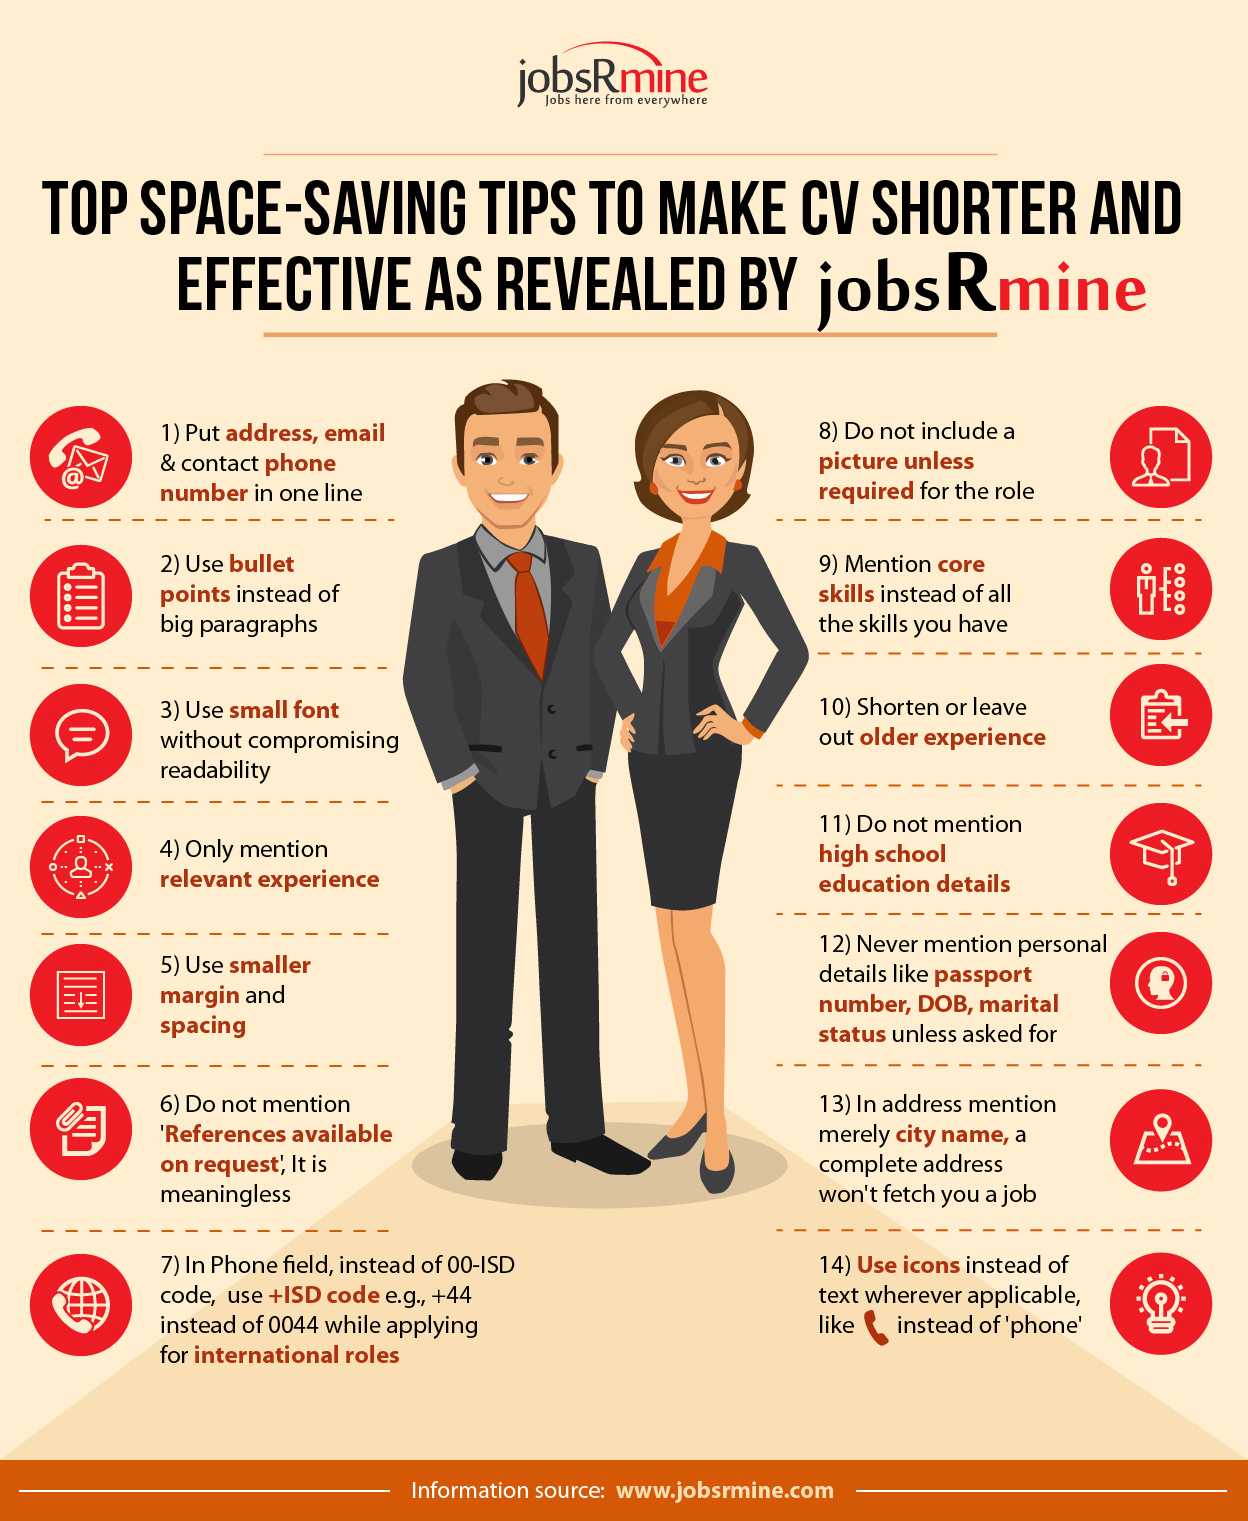 Download Tips to make CV shorter for free, by clicking download button